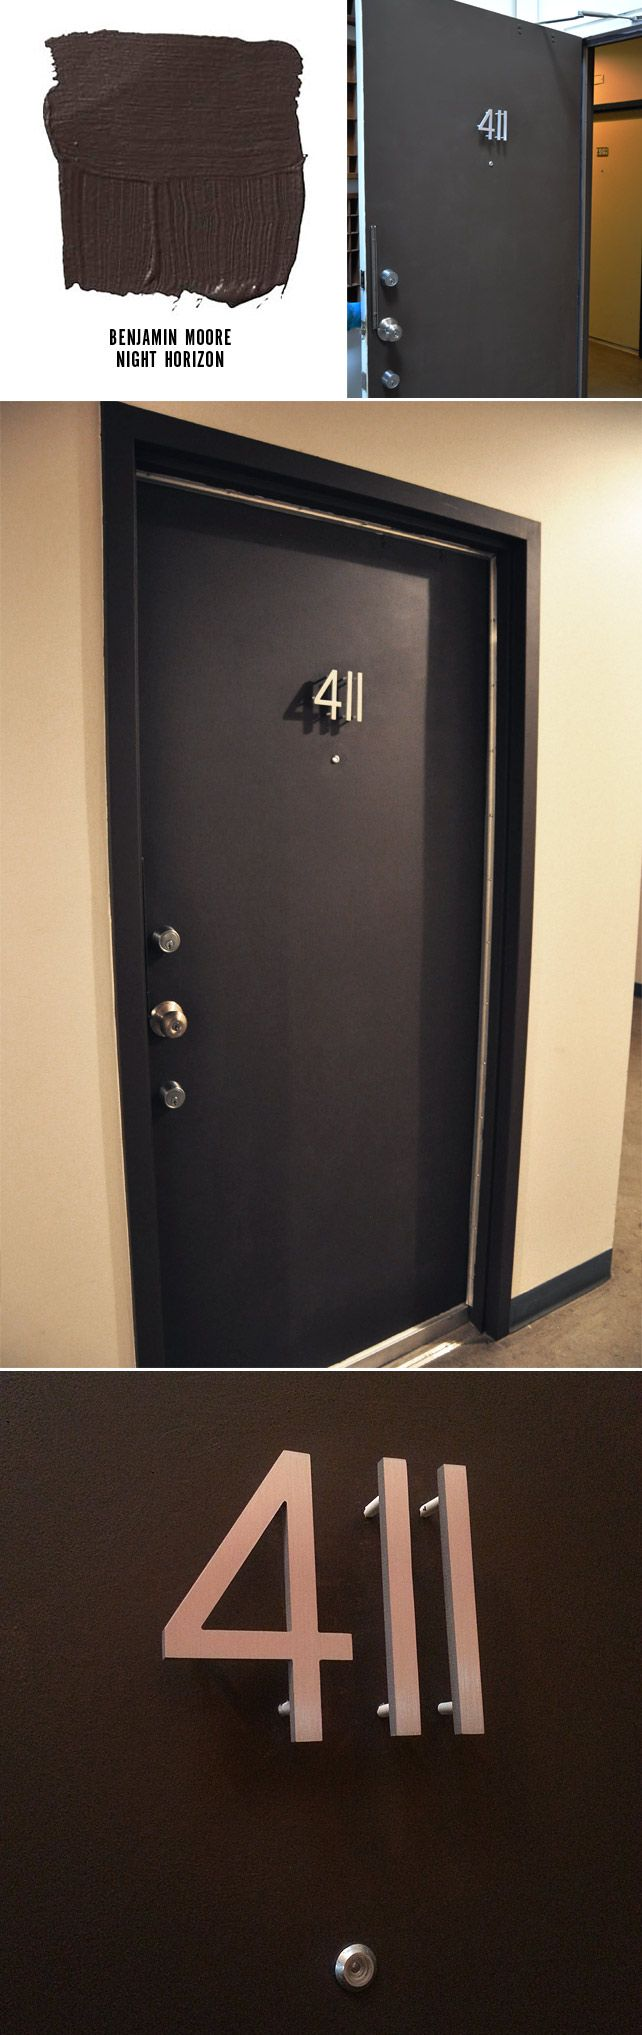 Apartment Numbers For Doors | New House Designs